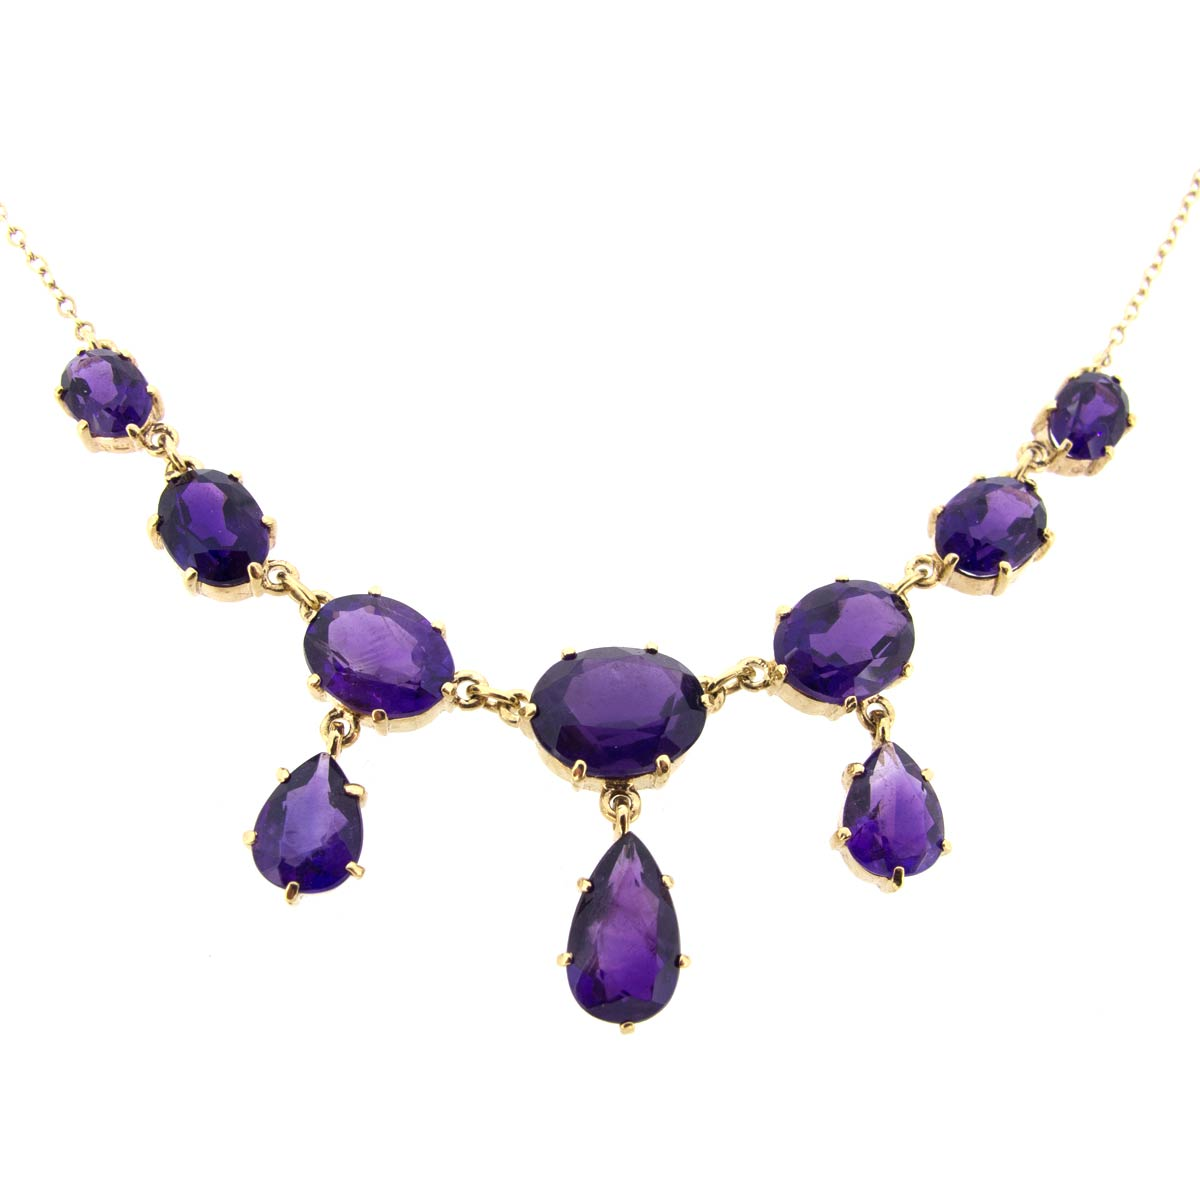 Gold & Amethyst Necklace